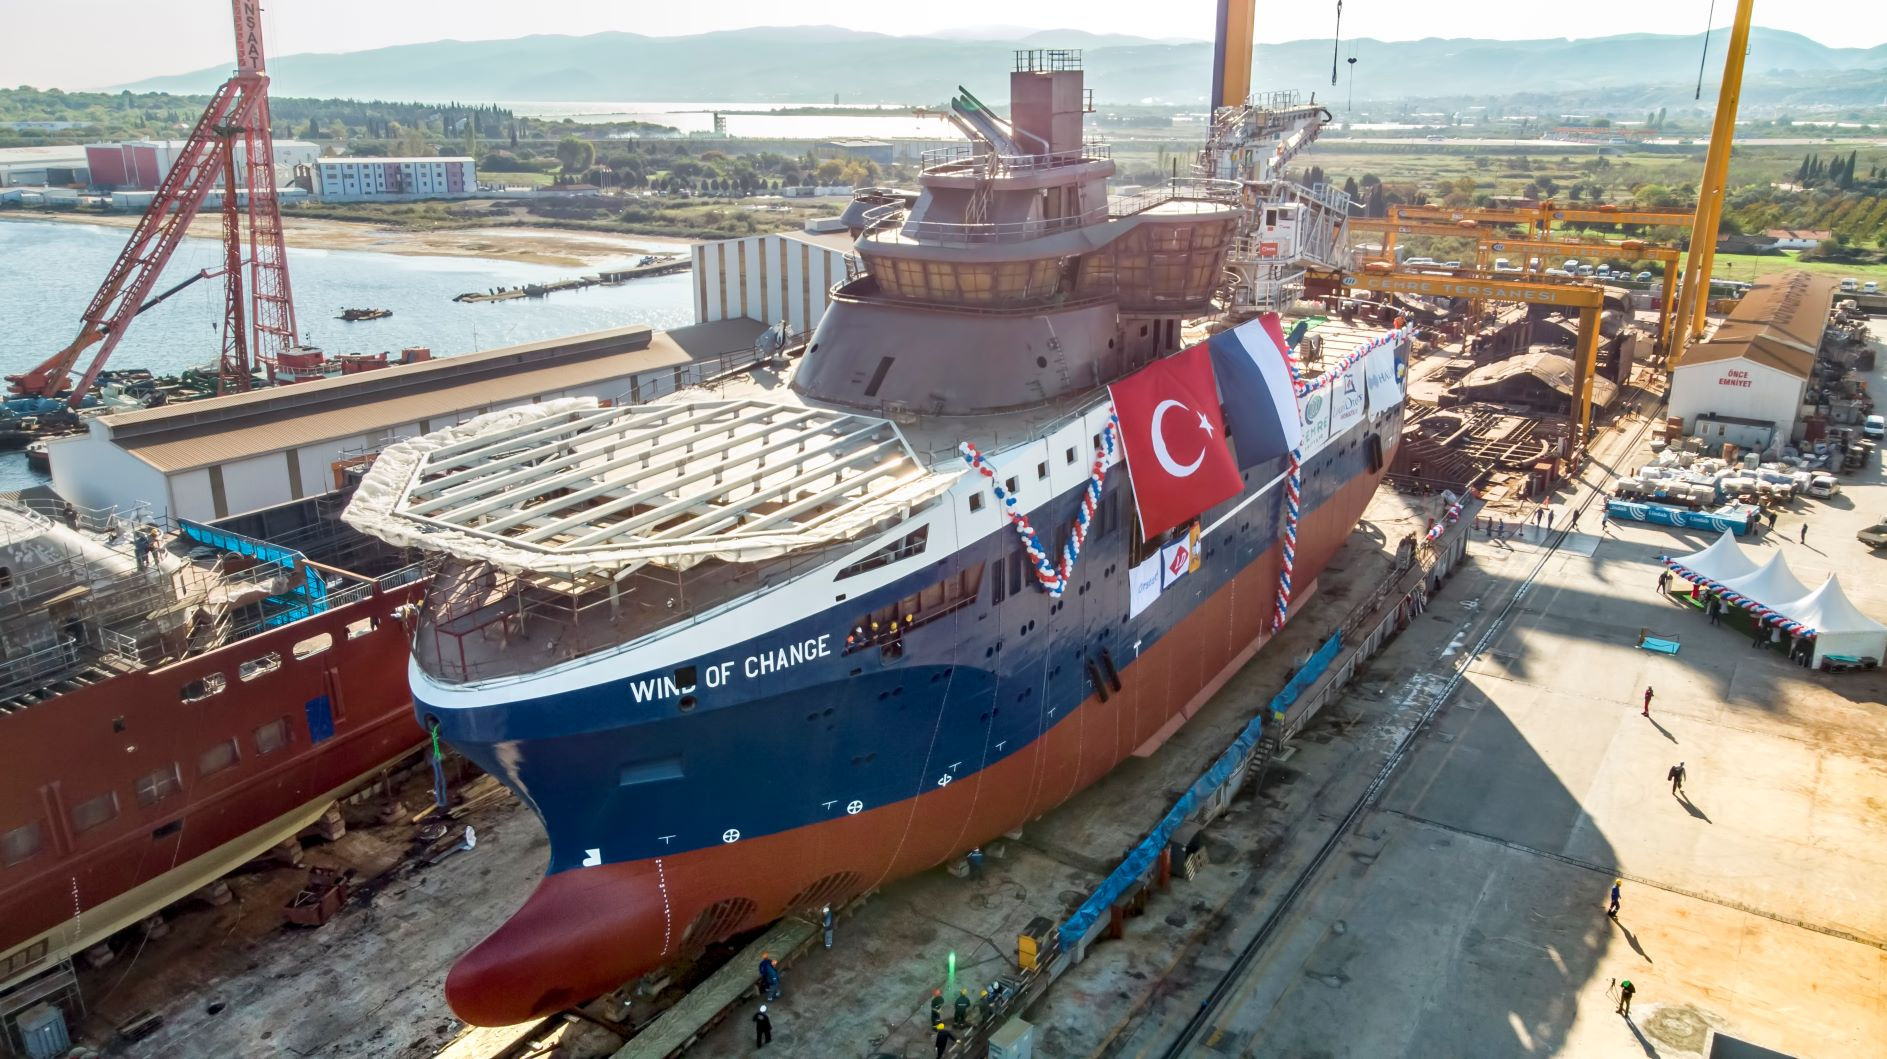 innovation Wind of Change©cemre shipyard